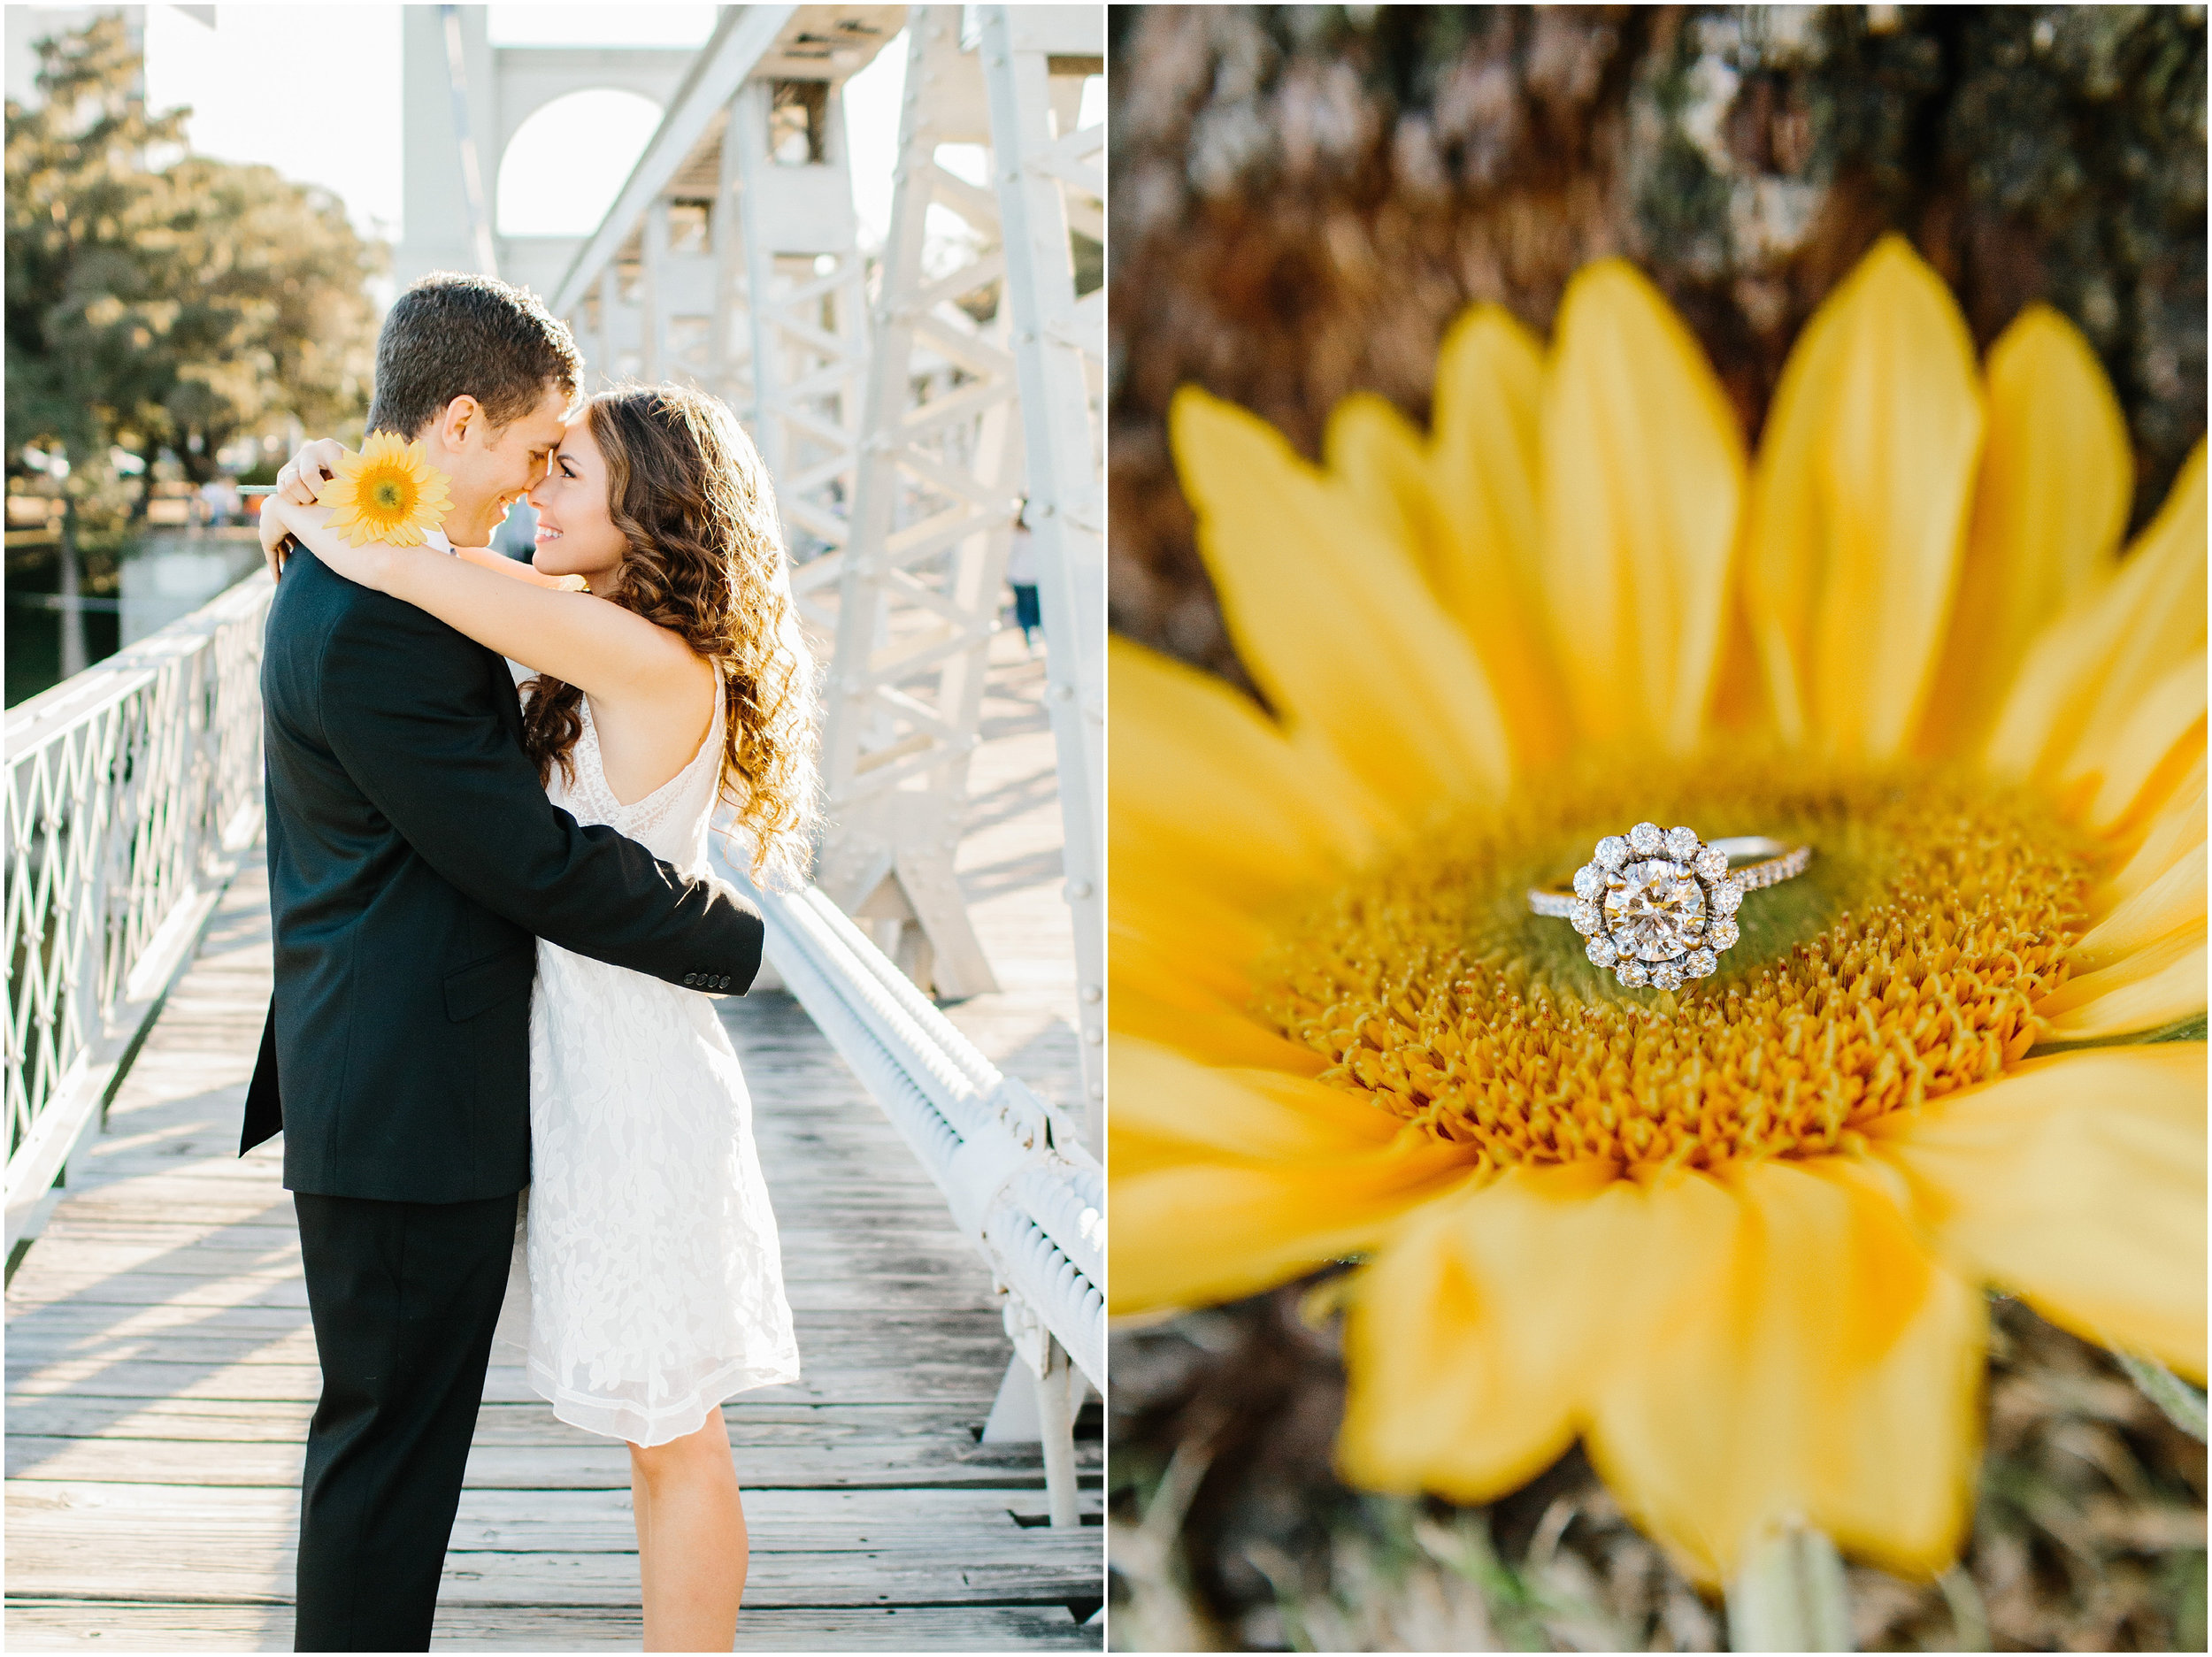 Downtown_Waco_Engagement_Session-57.jpg